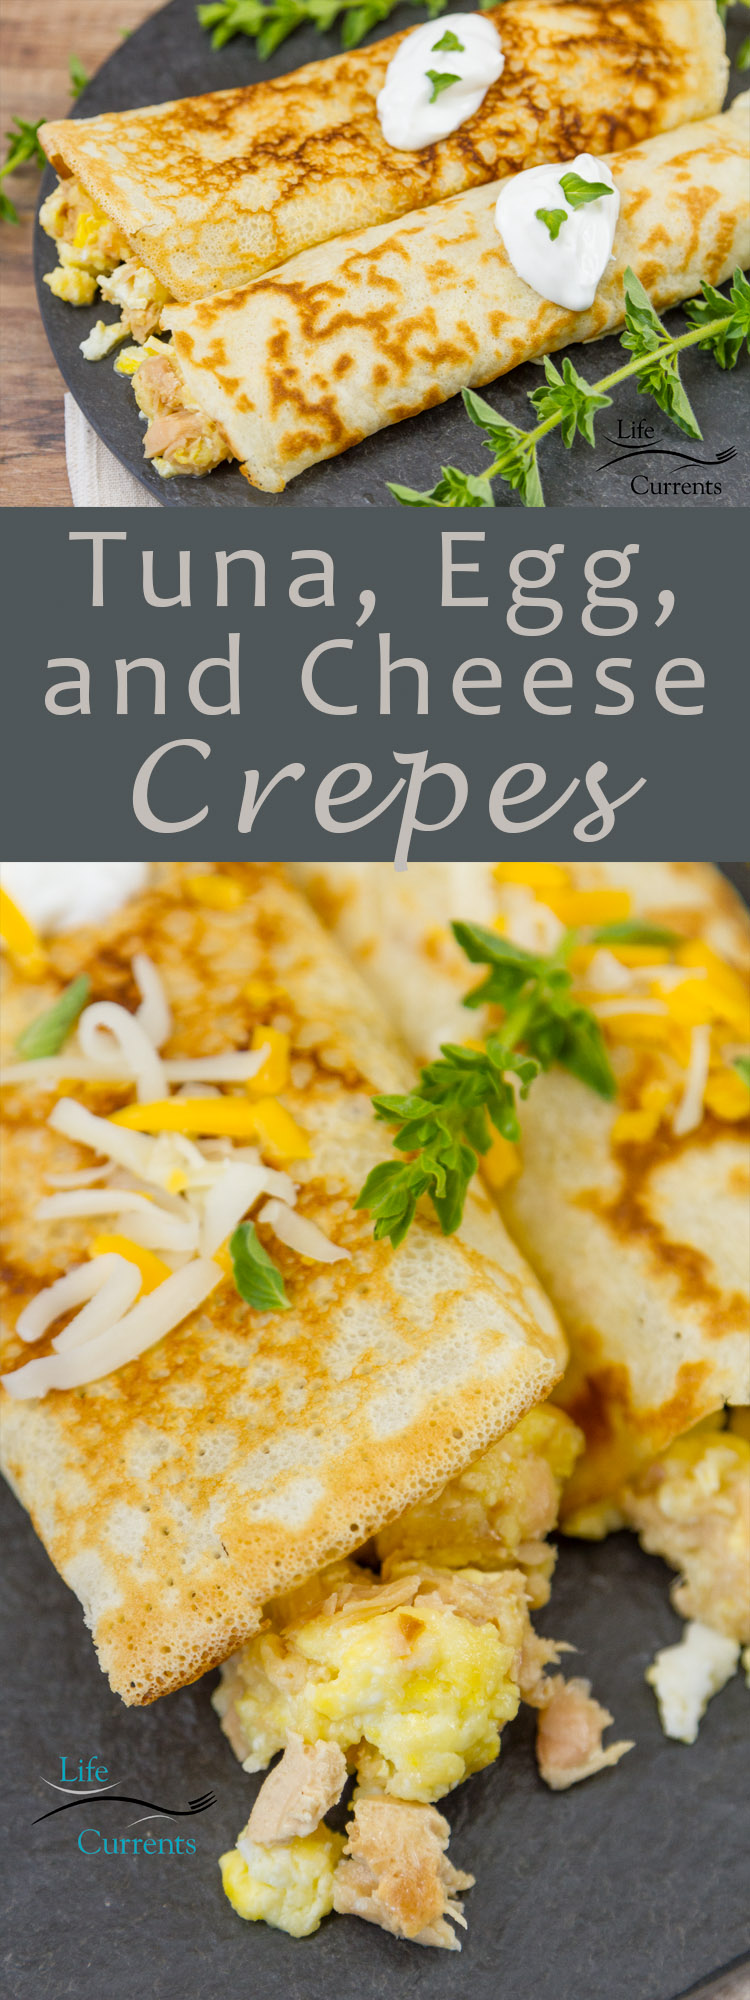 Tuna, Egg, and Cheese Crepes recipe - simple homemade goodness any time of the day!